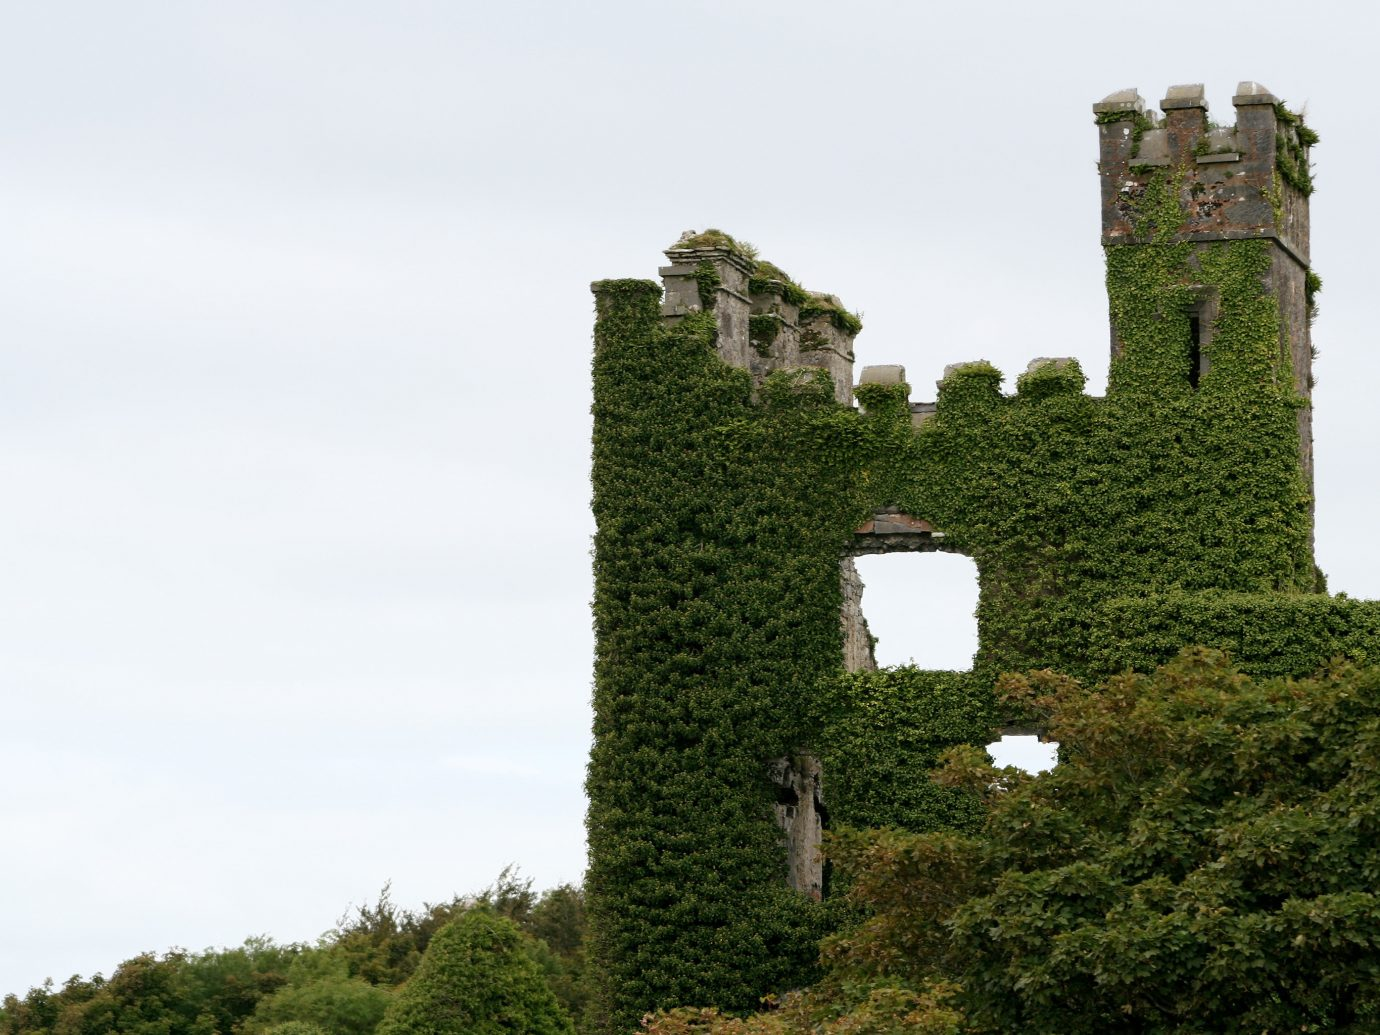 Offbeat tree outdoor sky landmark building ecosystem castle Ruins hill woody plant château rural area tower ancient history stone